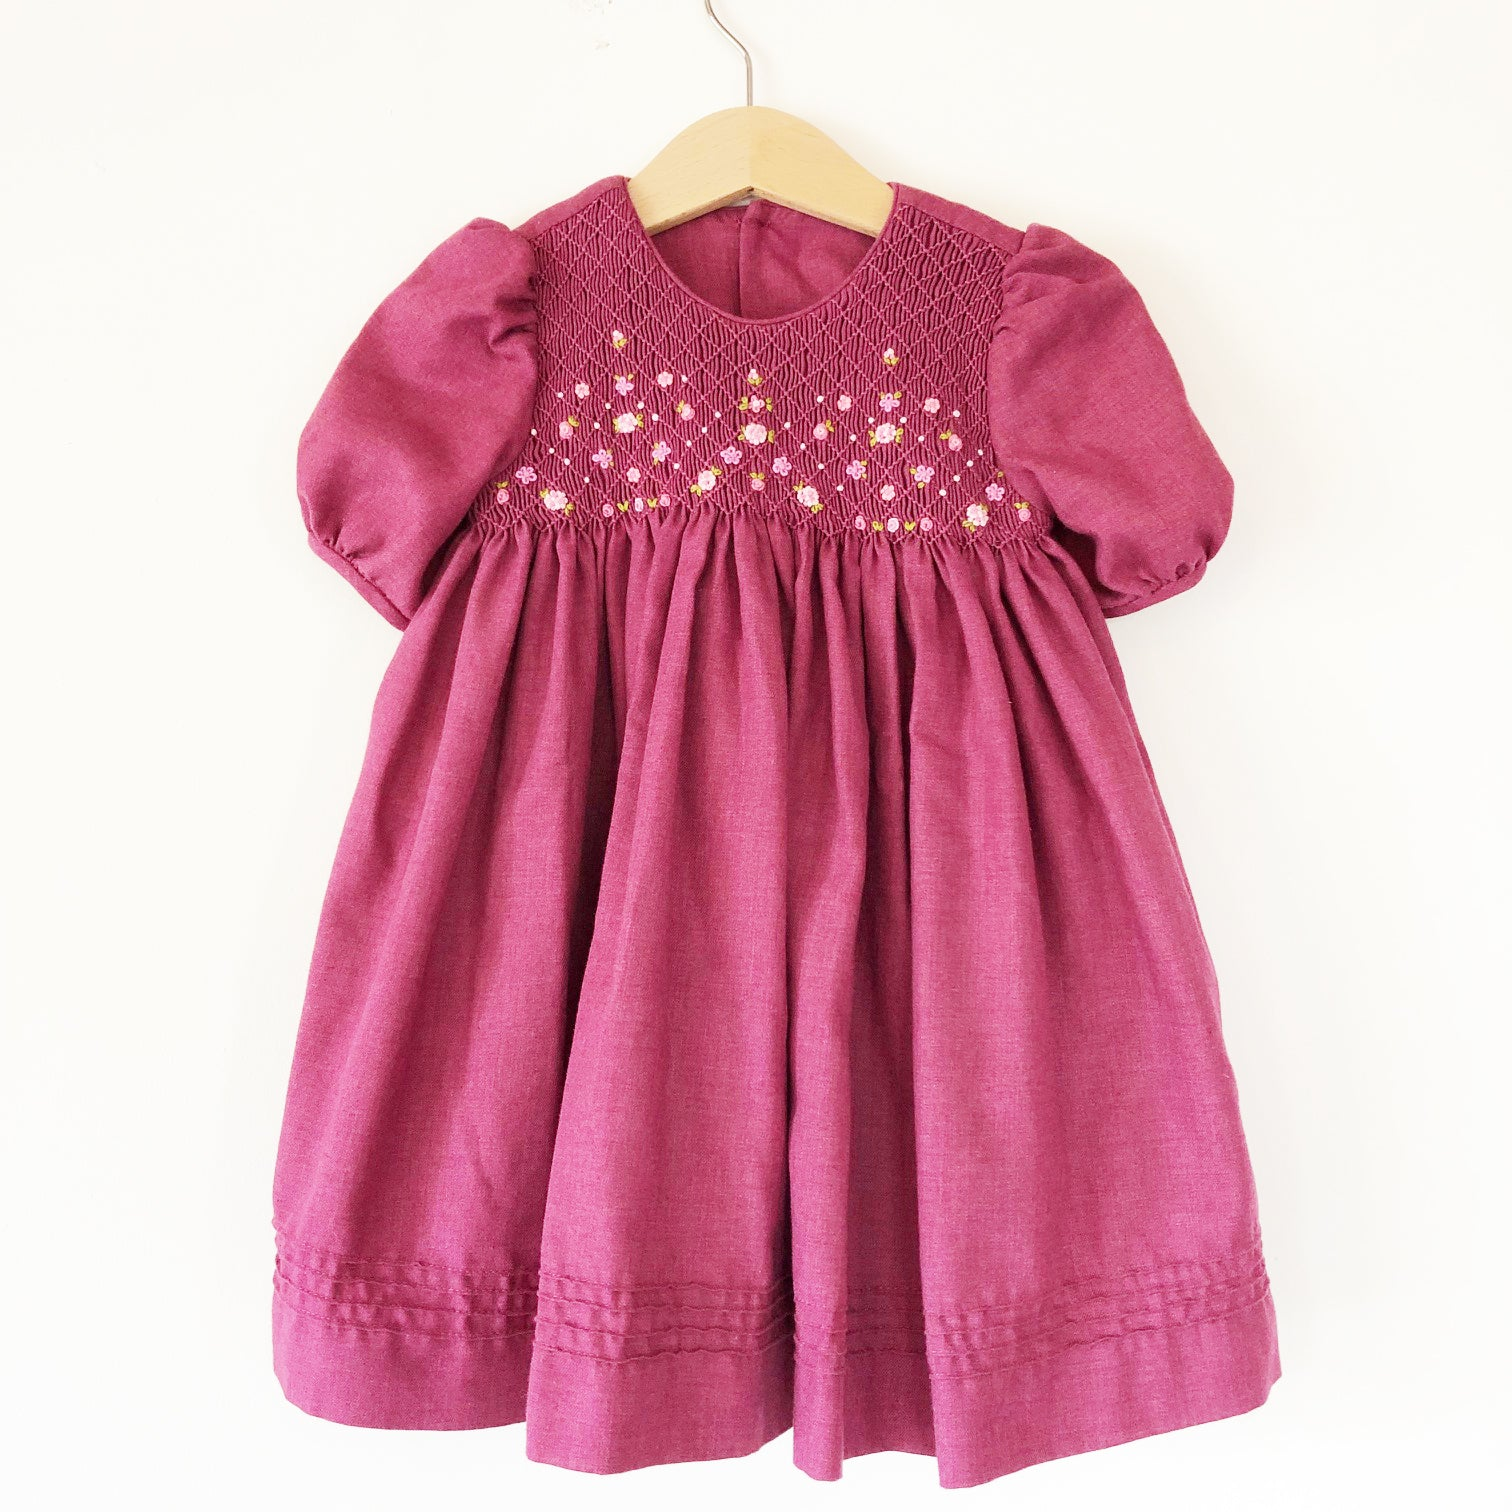 Smocked Dress with Puff Sleeves Size 1T-2T months